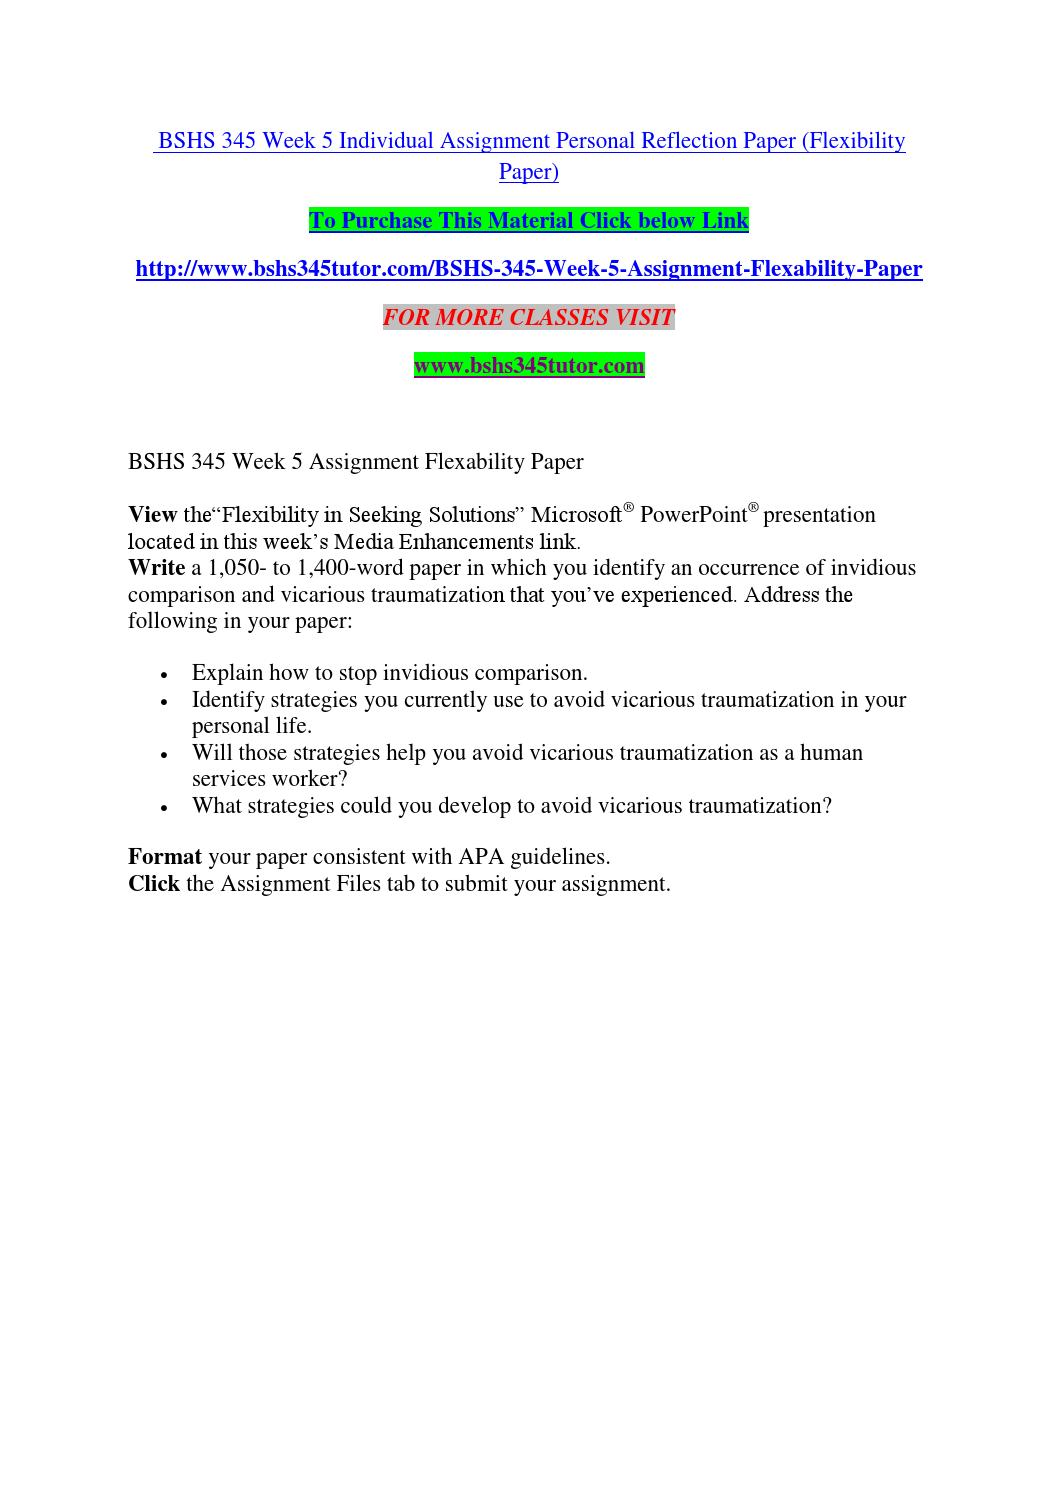 winesburg ohio critical analysis essay example Winesburg ohio critical analysis essay - creative ways to do your homework winesburg ohio critical analysis essay critical essay on joyce carol oates research paper on personal protective equipment my favorite outfit essays essay on otc drugs essay on life without paper.